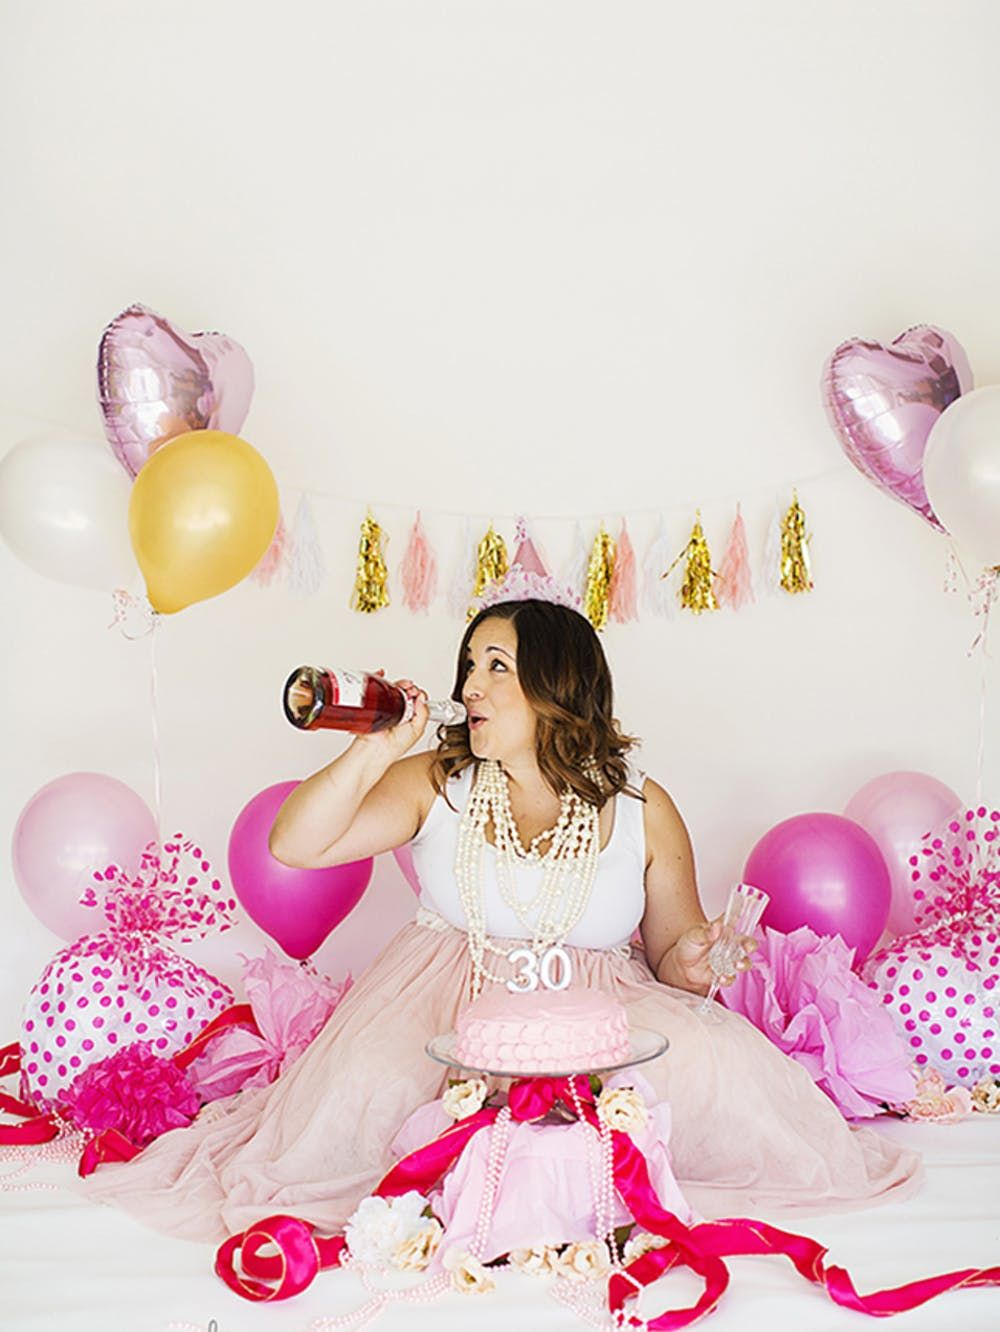 Everything You Need for a 30th Birthday Princess Party